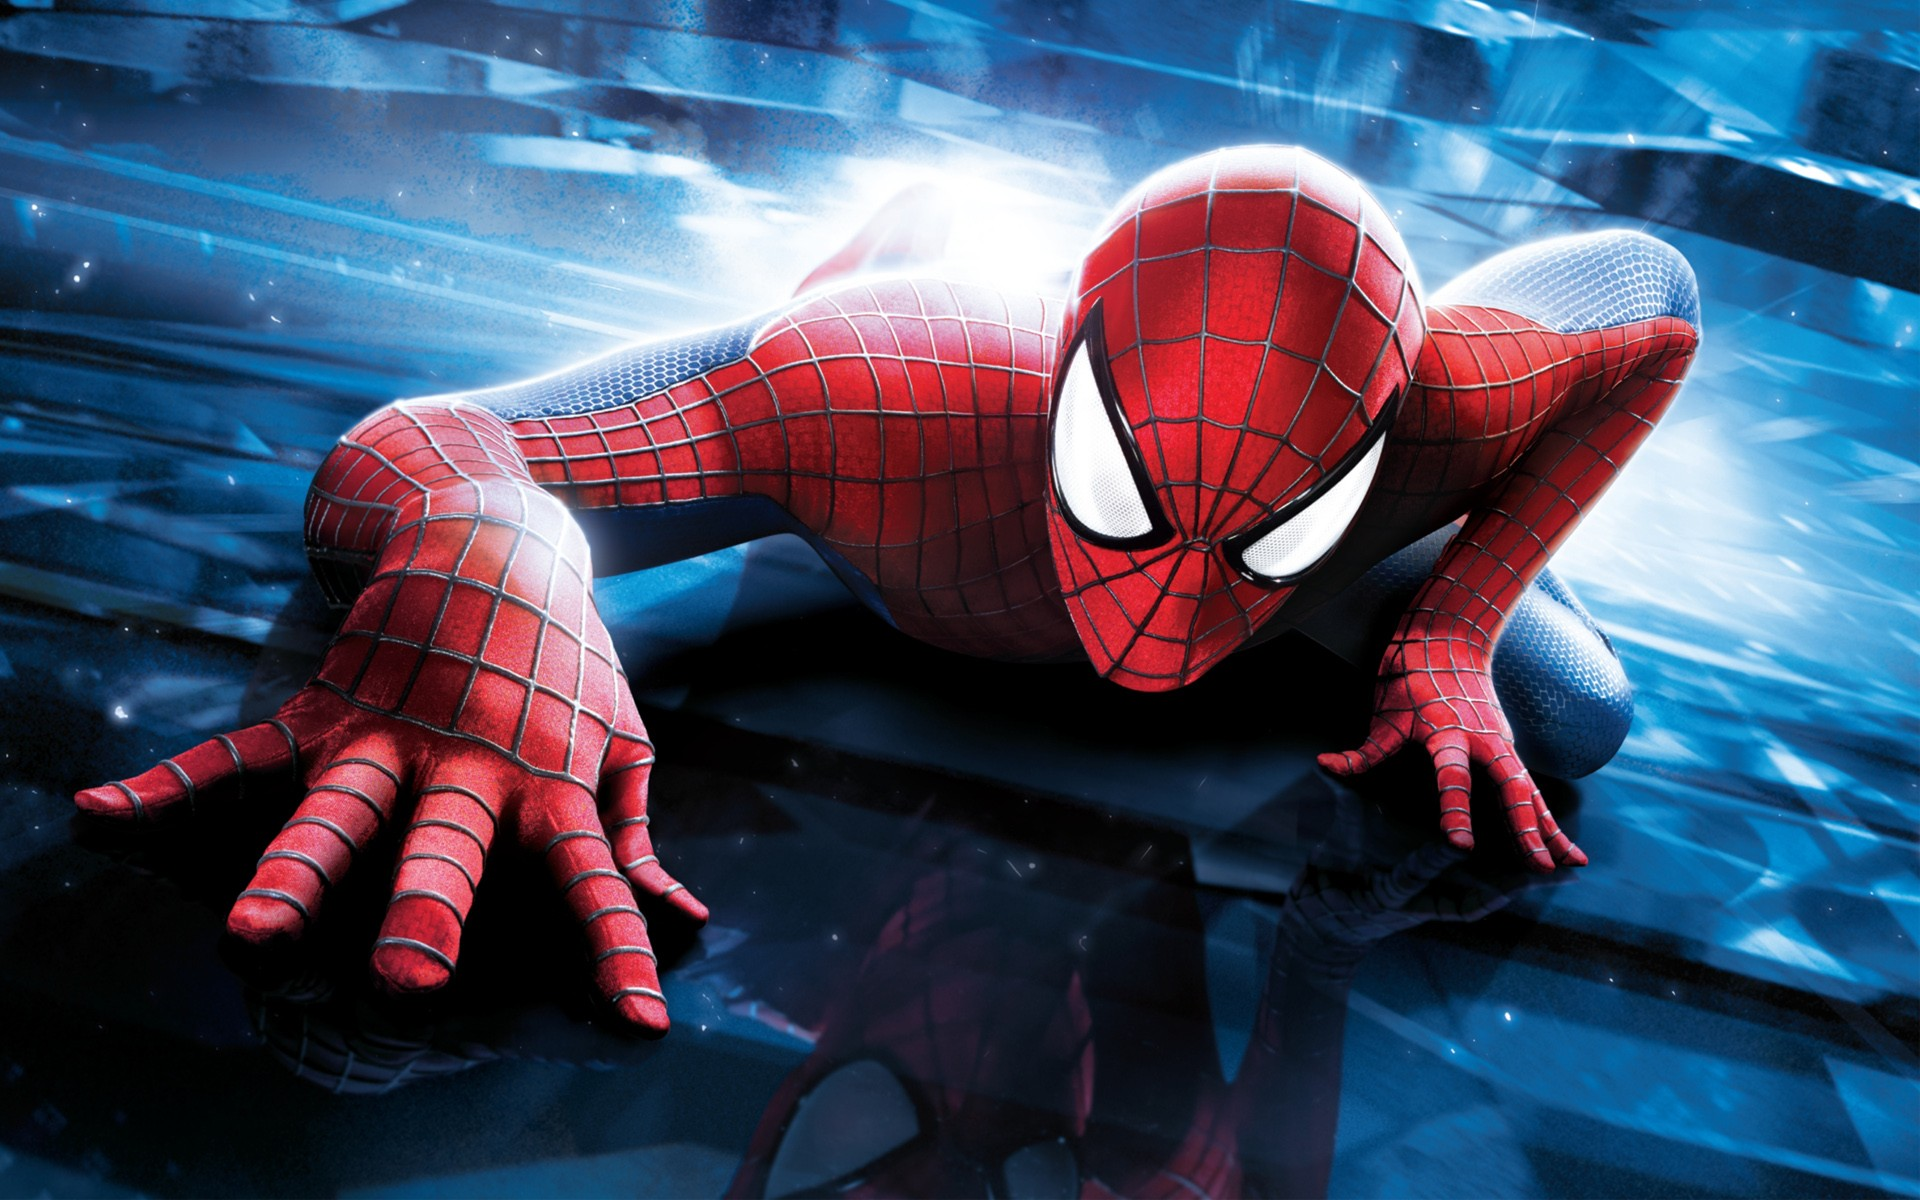 Pics Photos - Spiderman Hd Wallpaper With 1440x900 Resolution